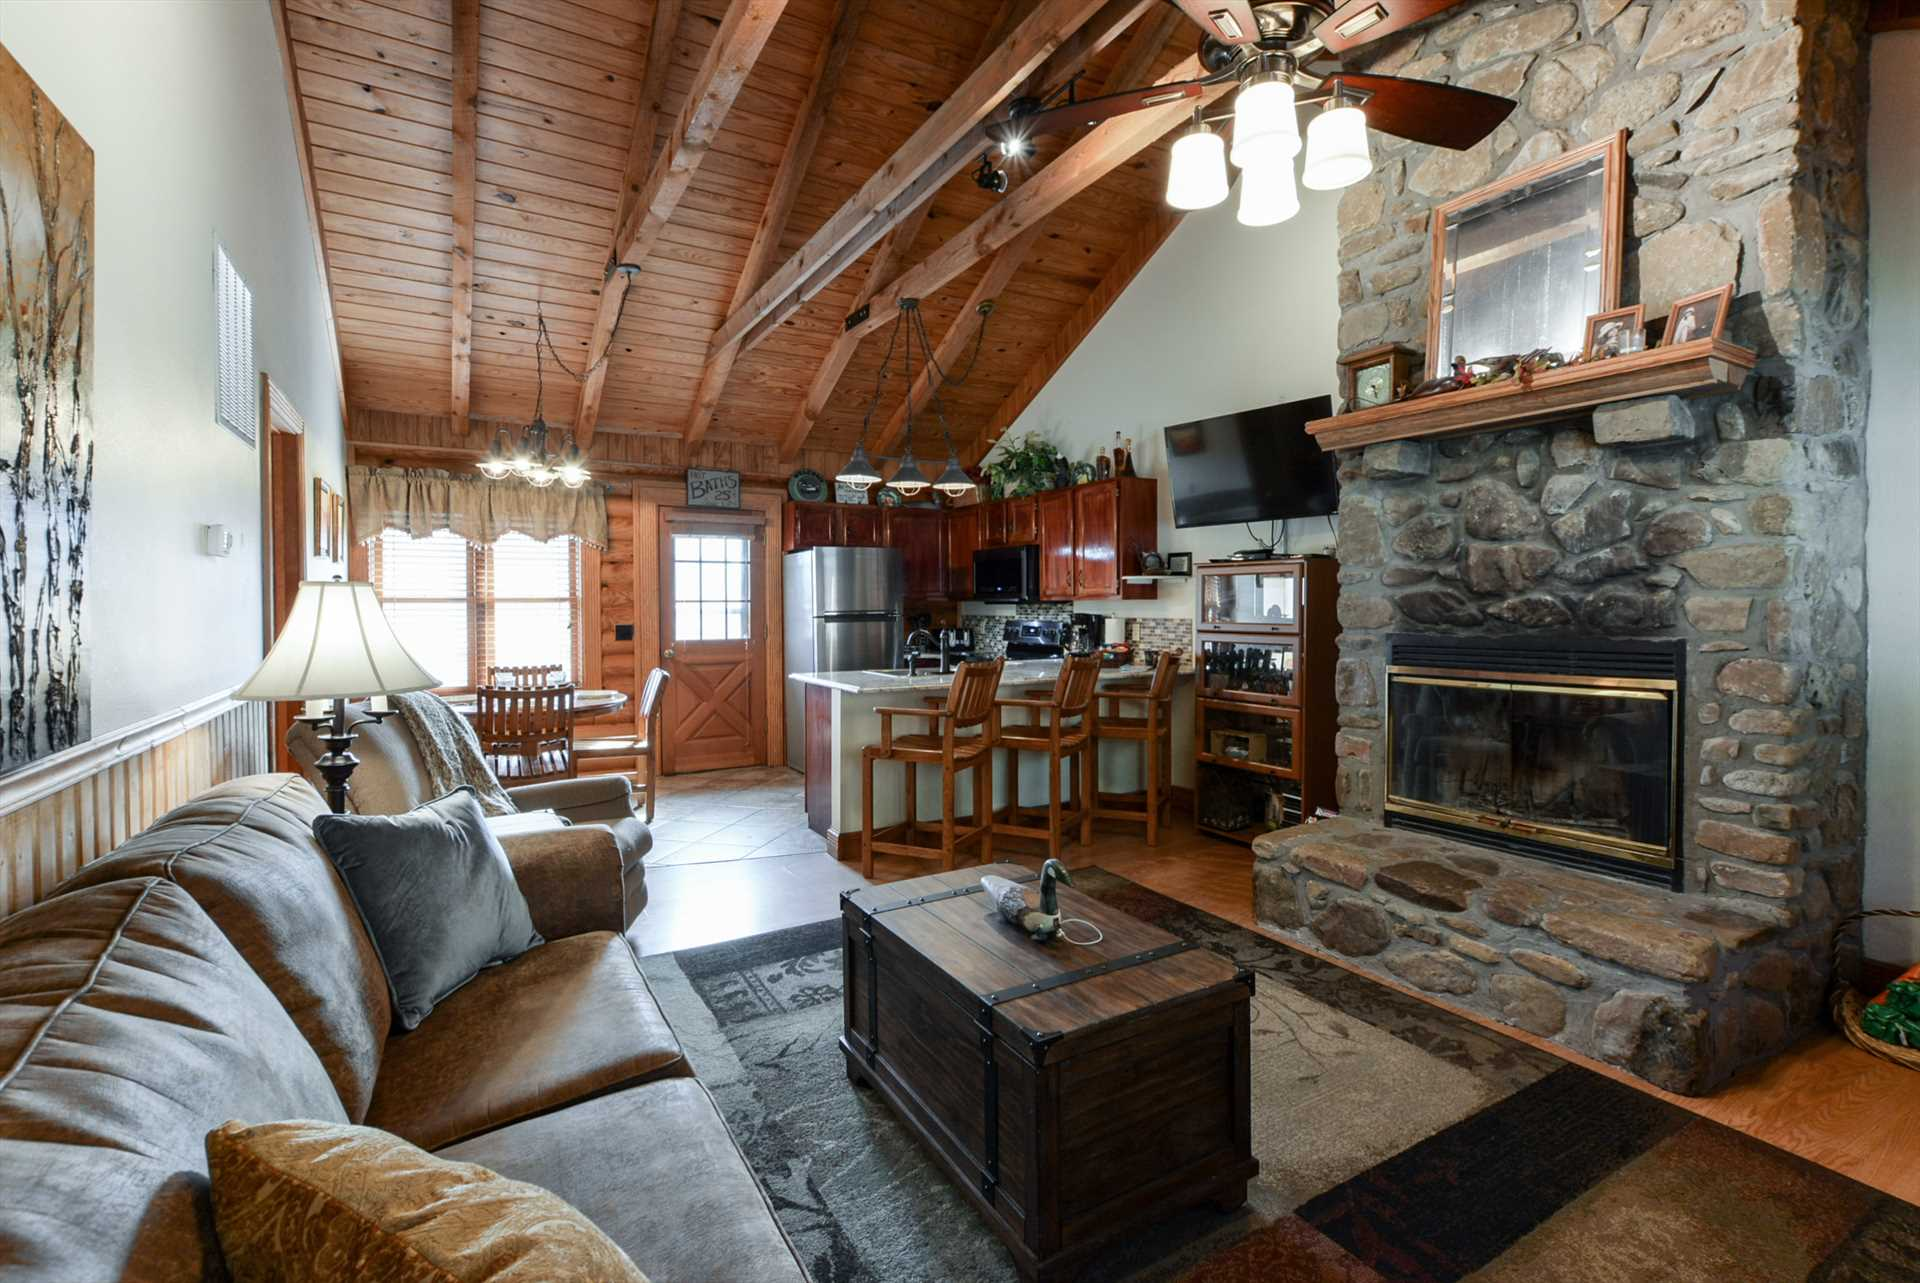 High ceilings and exposed wooden beams give this property it